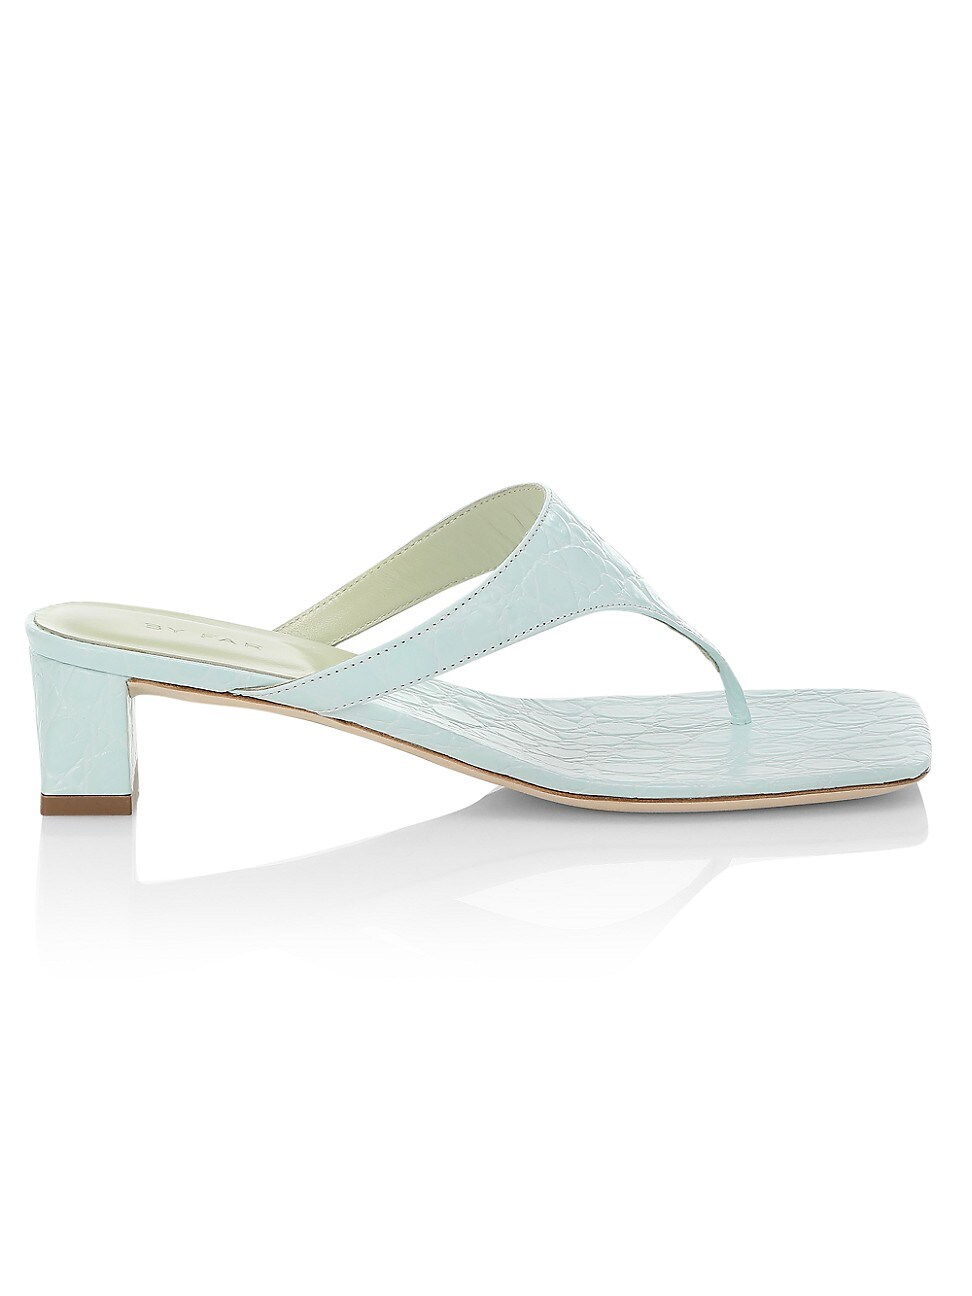 By Far WOMEN'S SHAWN CROC-EMBOSSED LEATHER THONG SANDALS